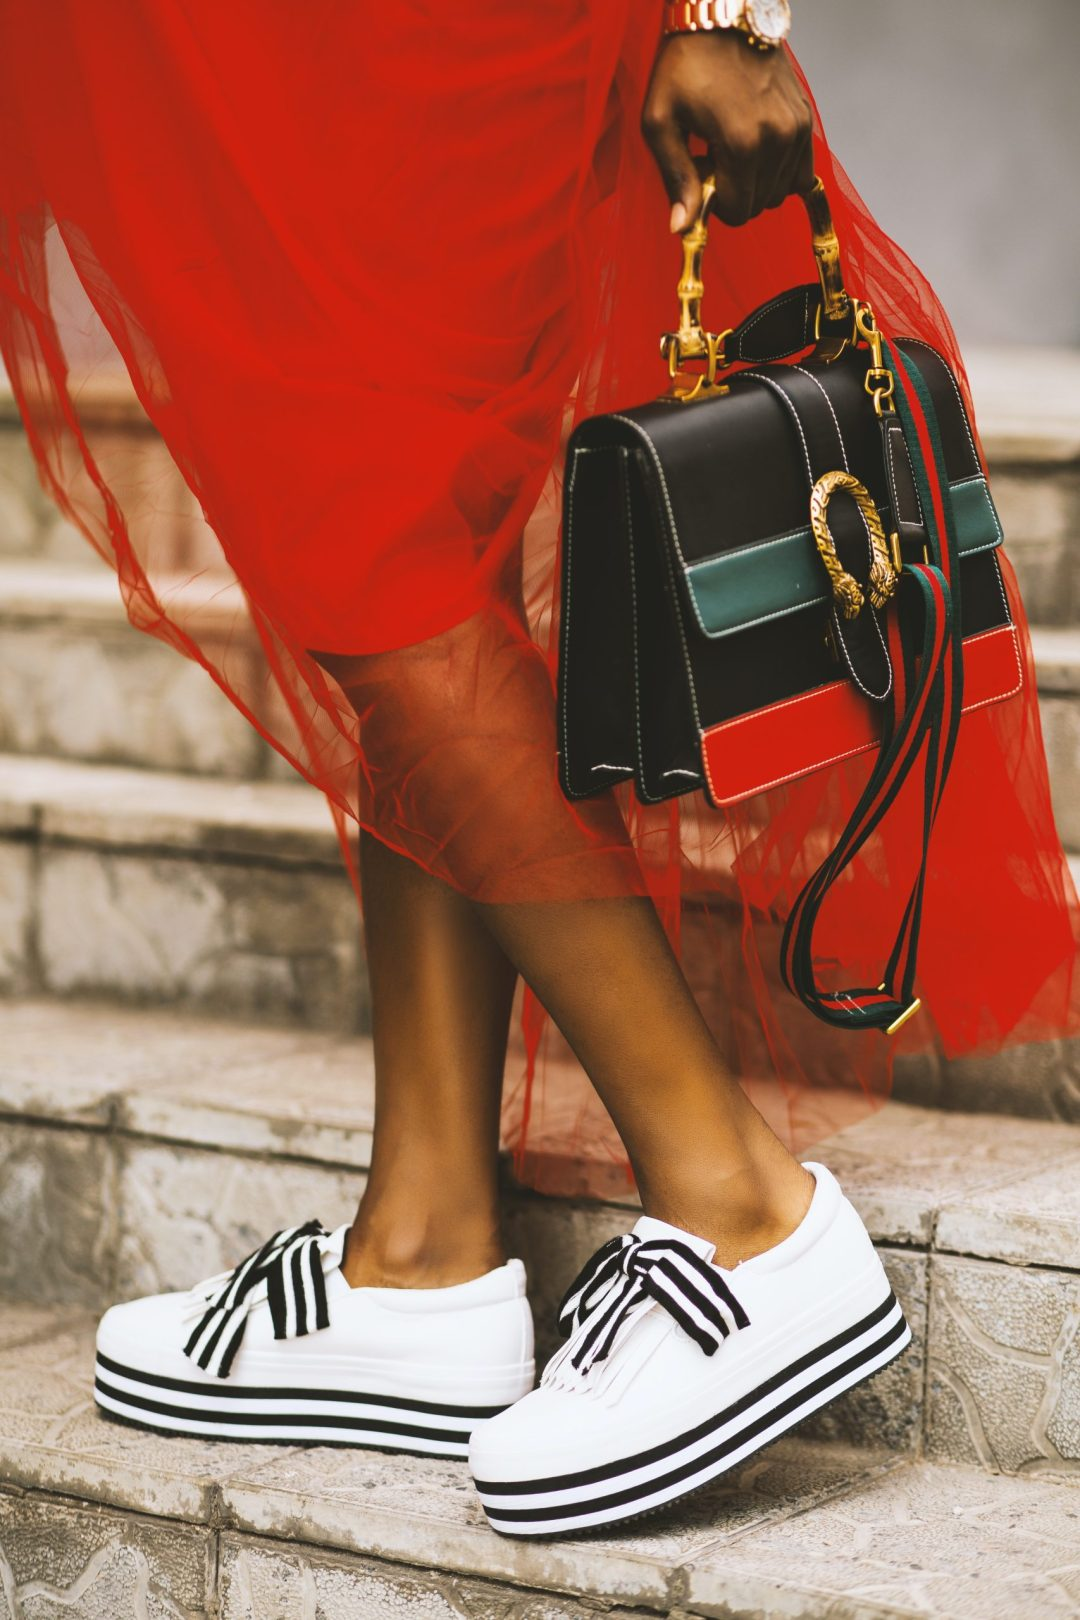 Gucci vs Prada: Which Is The Right Brand For You?